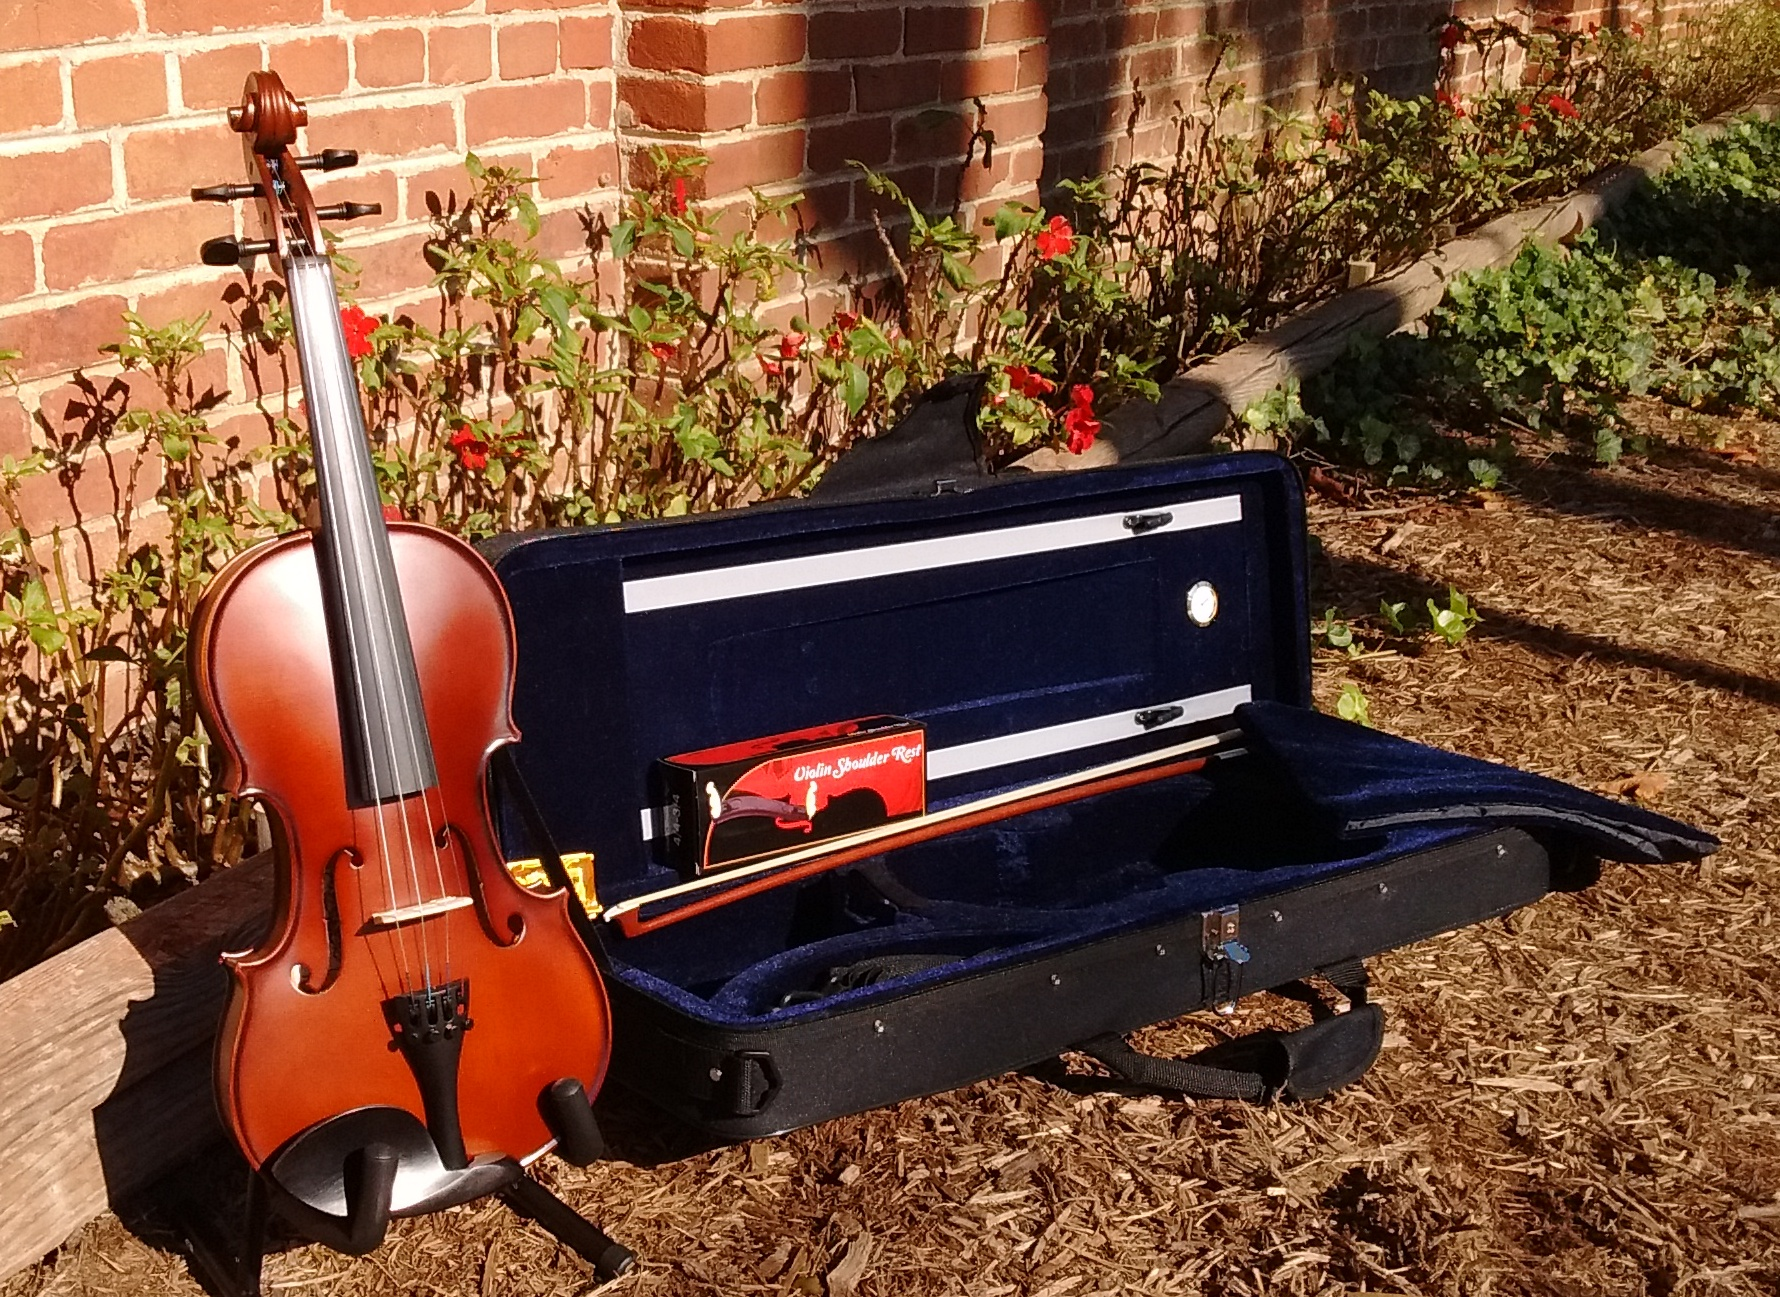 The Palatino VN 500 Genoa Series Violin Outfit - Regularly Priced in our store at only $159.00!